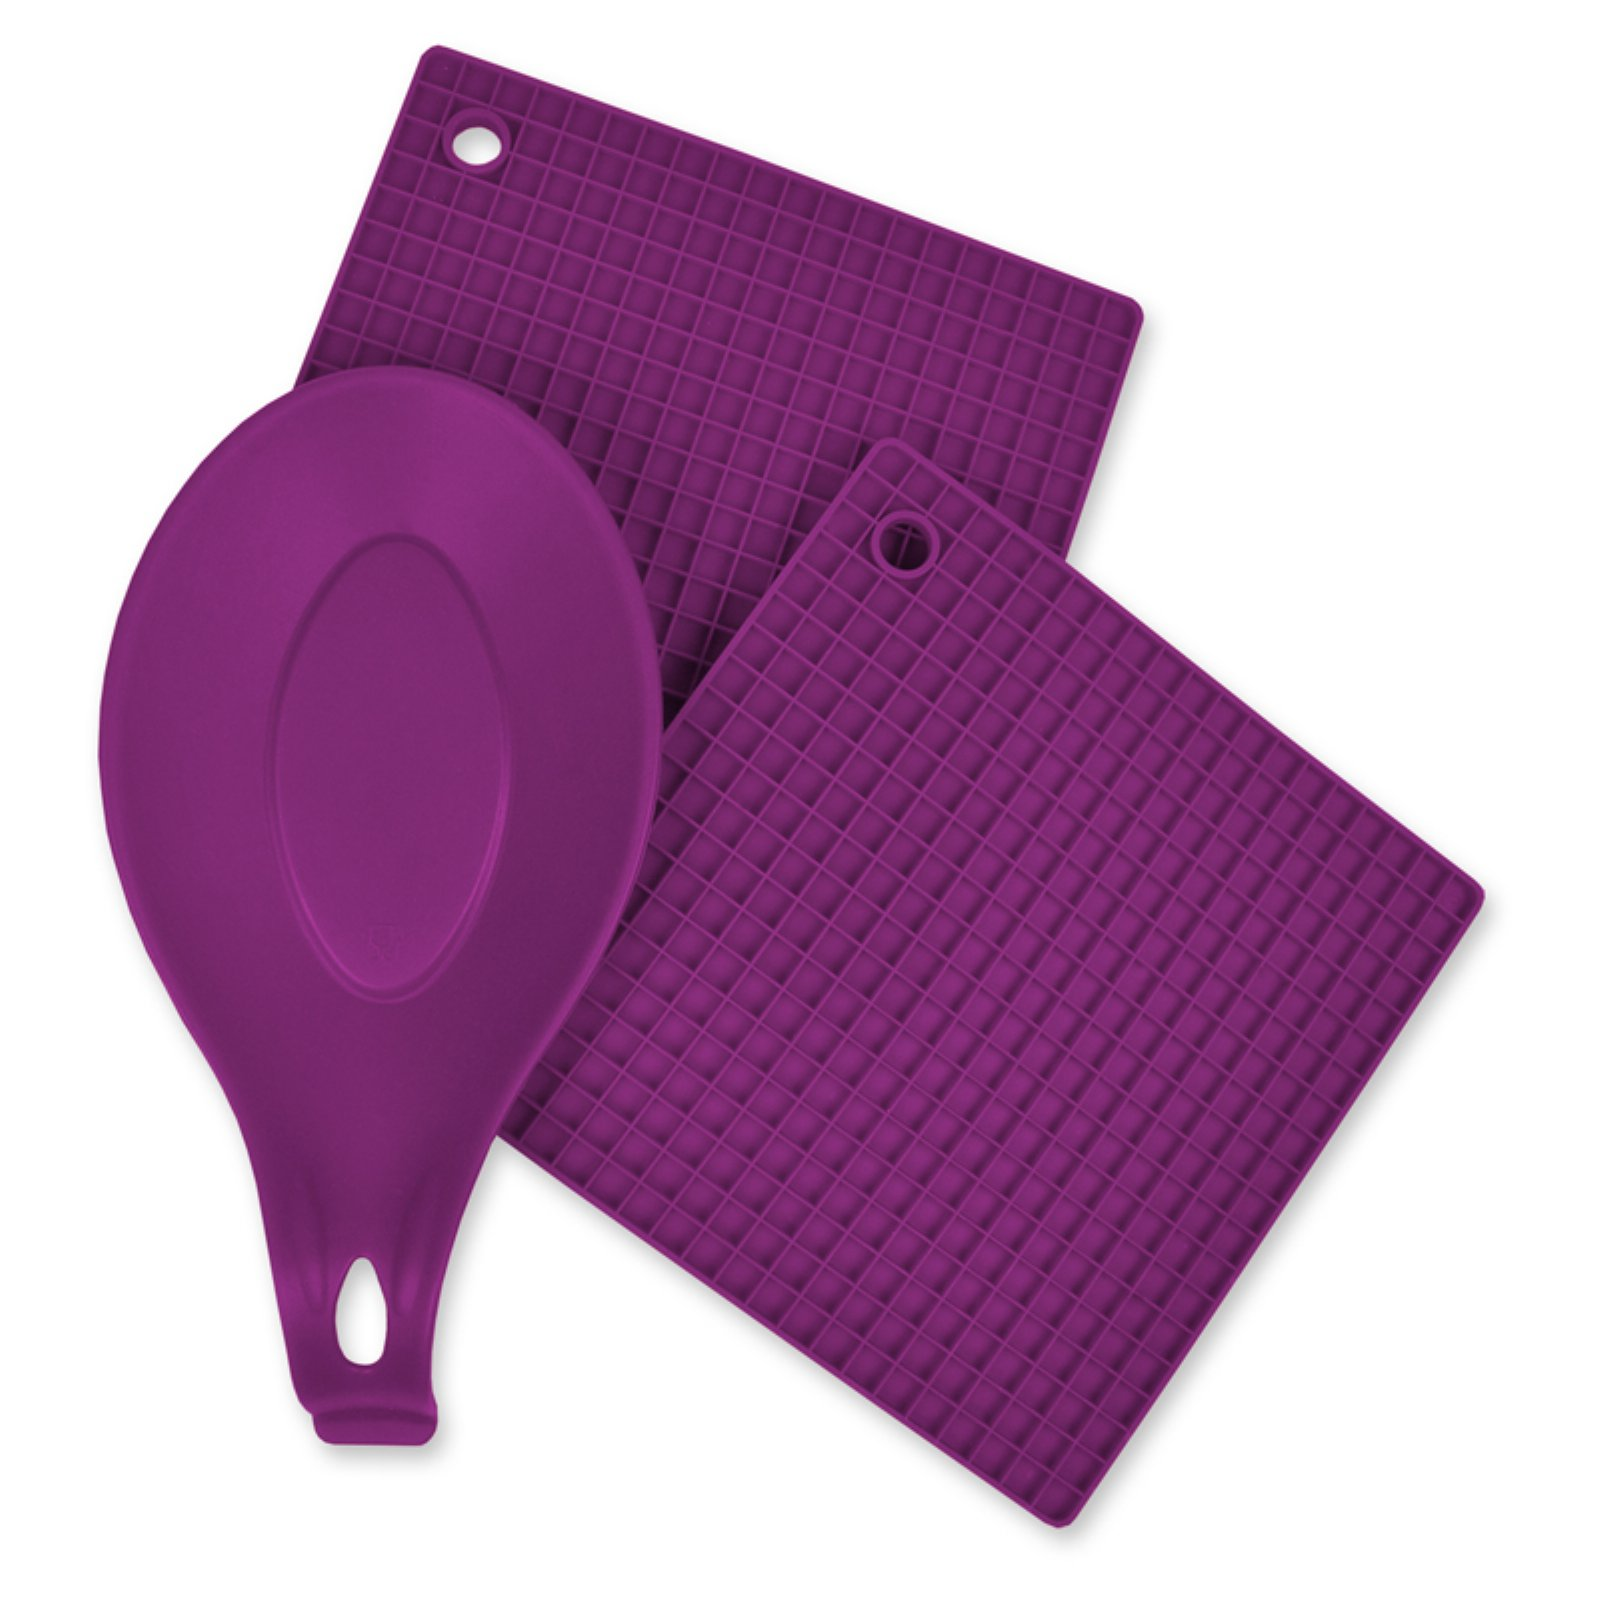 Design Imports Red 3 Piece Kitchen Accessory Set - Includes 2 silicone potholder/Trivets and 1 silicone spoon rest.